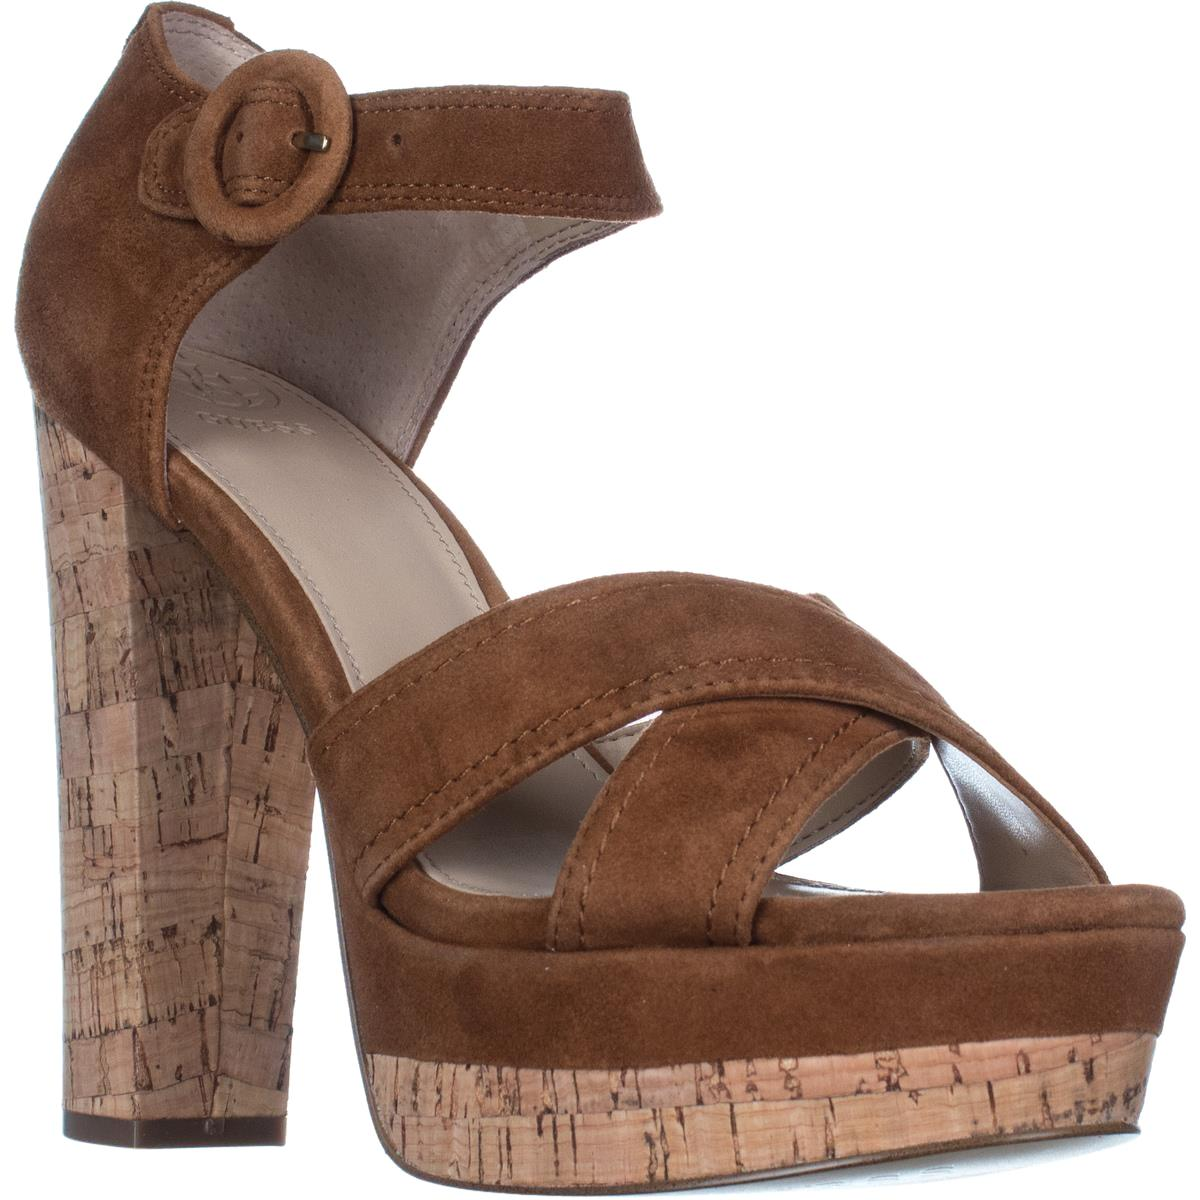 d0b165474515e Guess Brown Parris Parris Parris Platform Ankle Strap Sandals Dark Natural  Pumps Size US 9.5 Regular (M